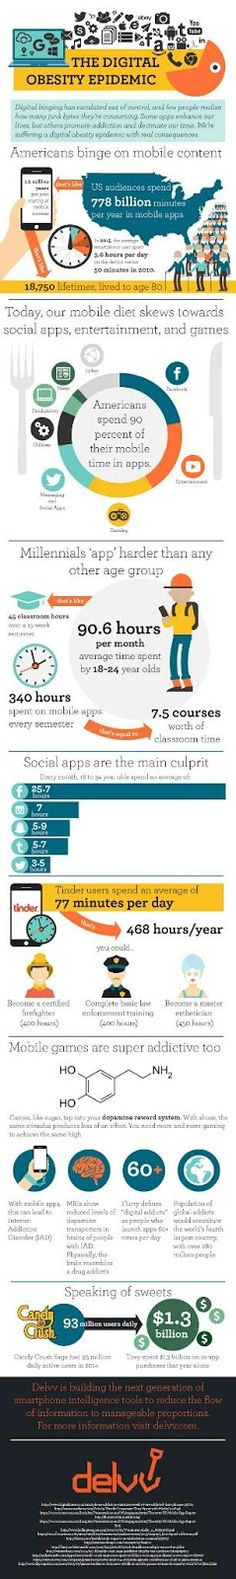 E-Volve Mobile Marketing: Are You Guilty of Mobile App Overindulgence?